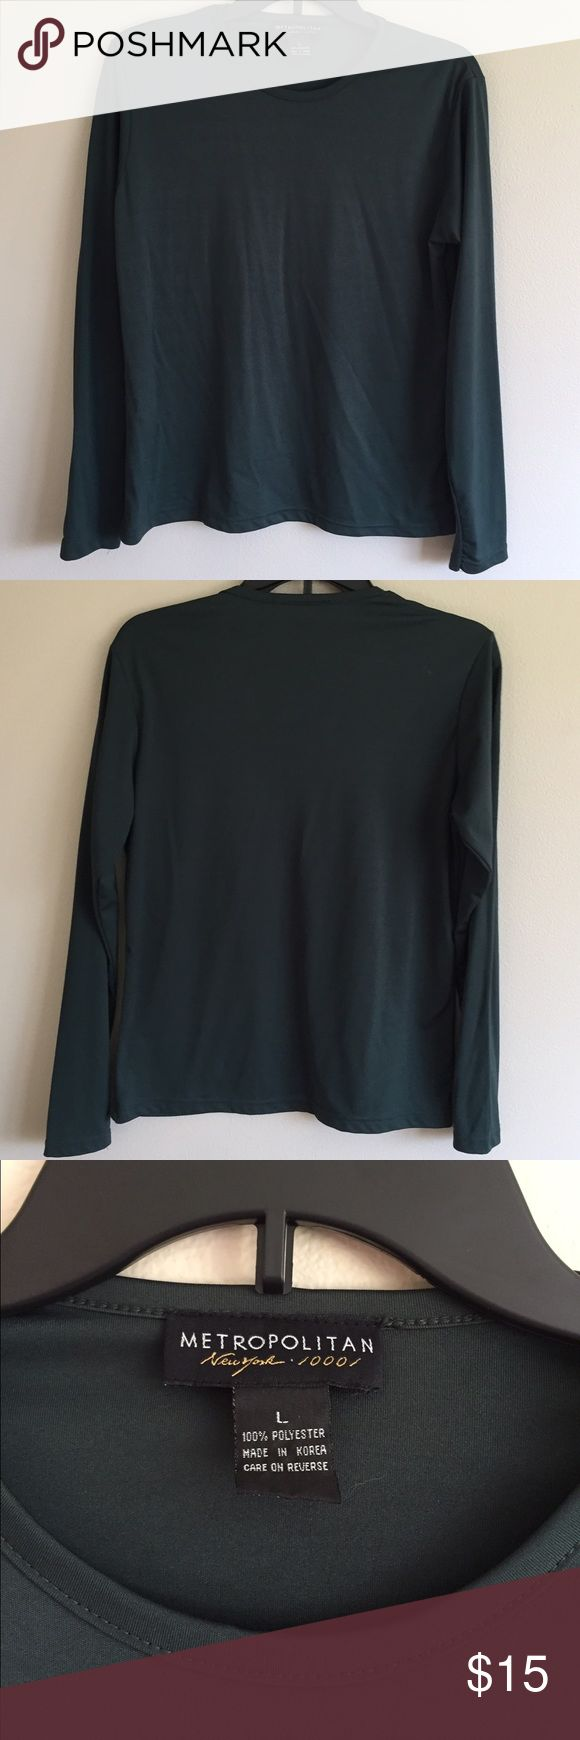 Dark Green Long Sleeve Top Dark Green Long Sleeve Top, 100% polyester, excellent Condition, size Large Metropolitan New York 10001 Tops Tees - Long Sleeve